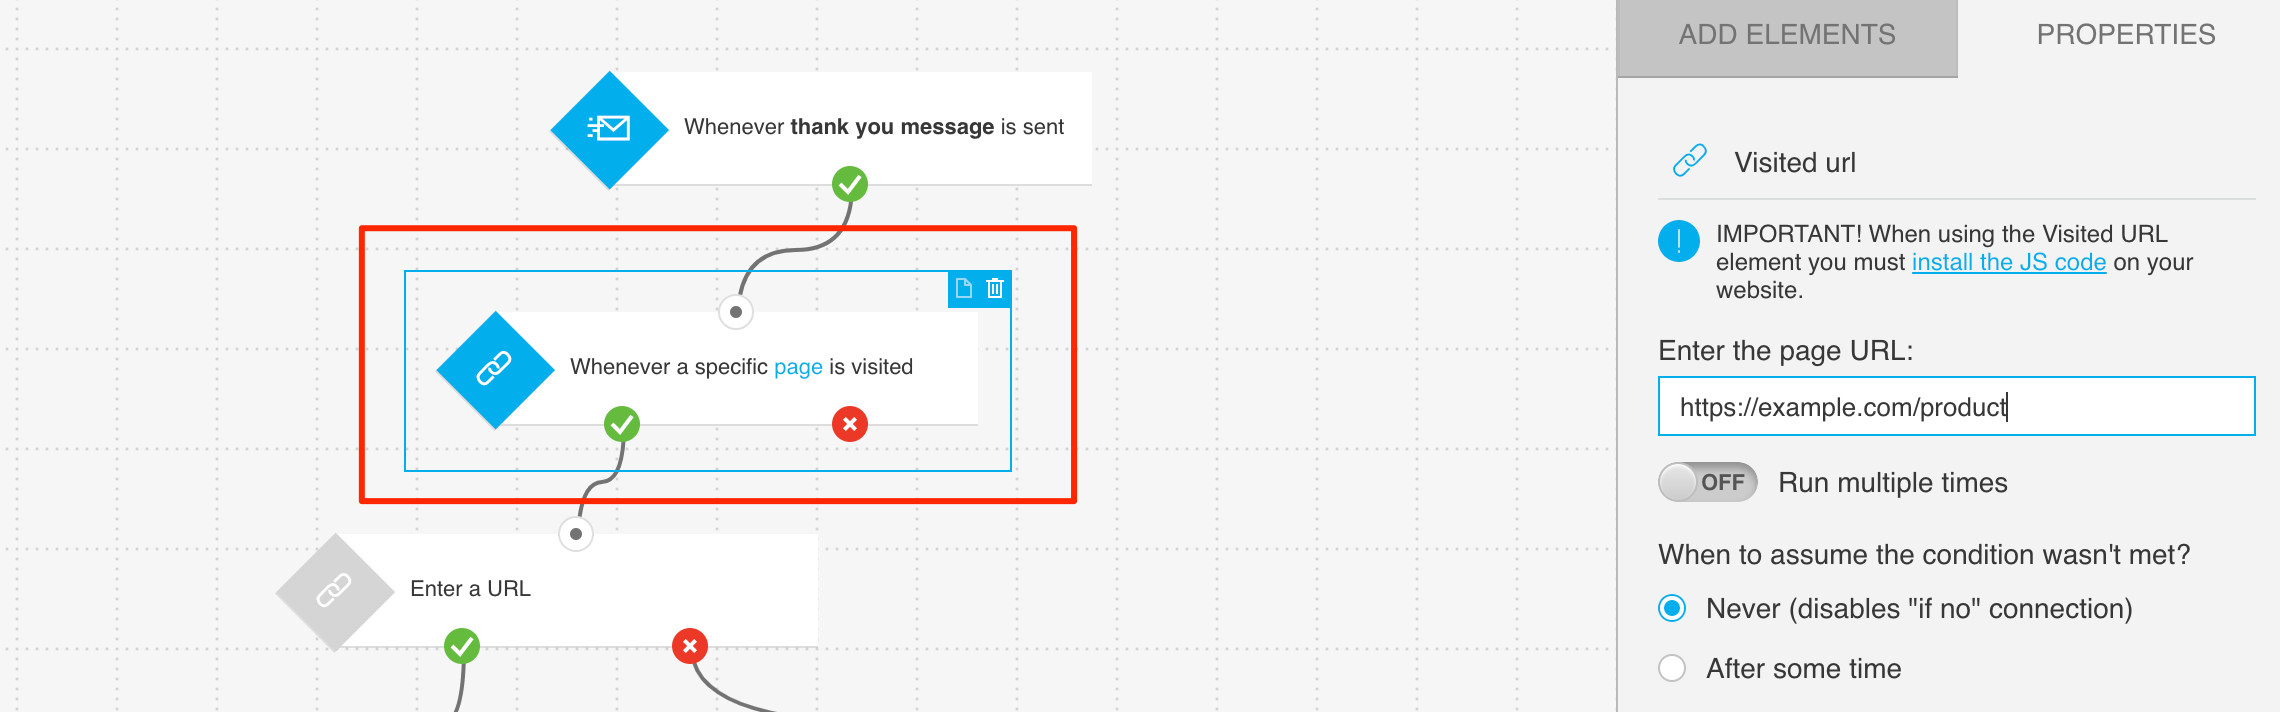 Example configuration of condition tracking visits to product page